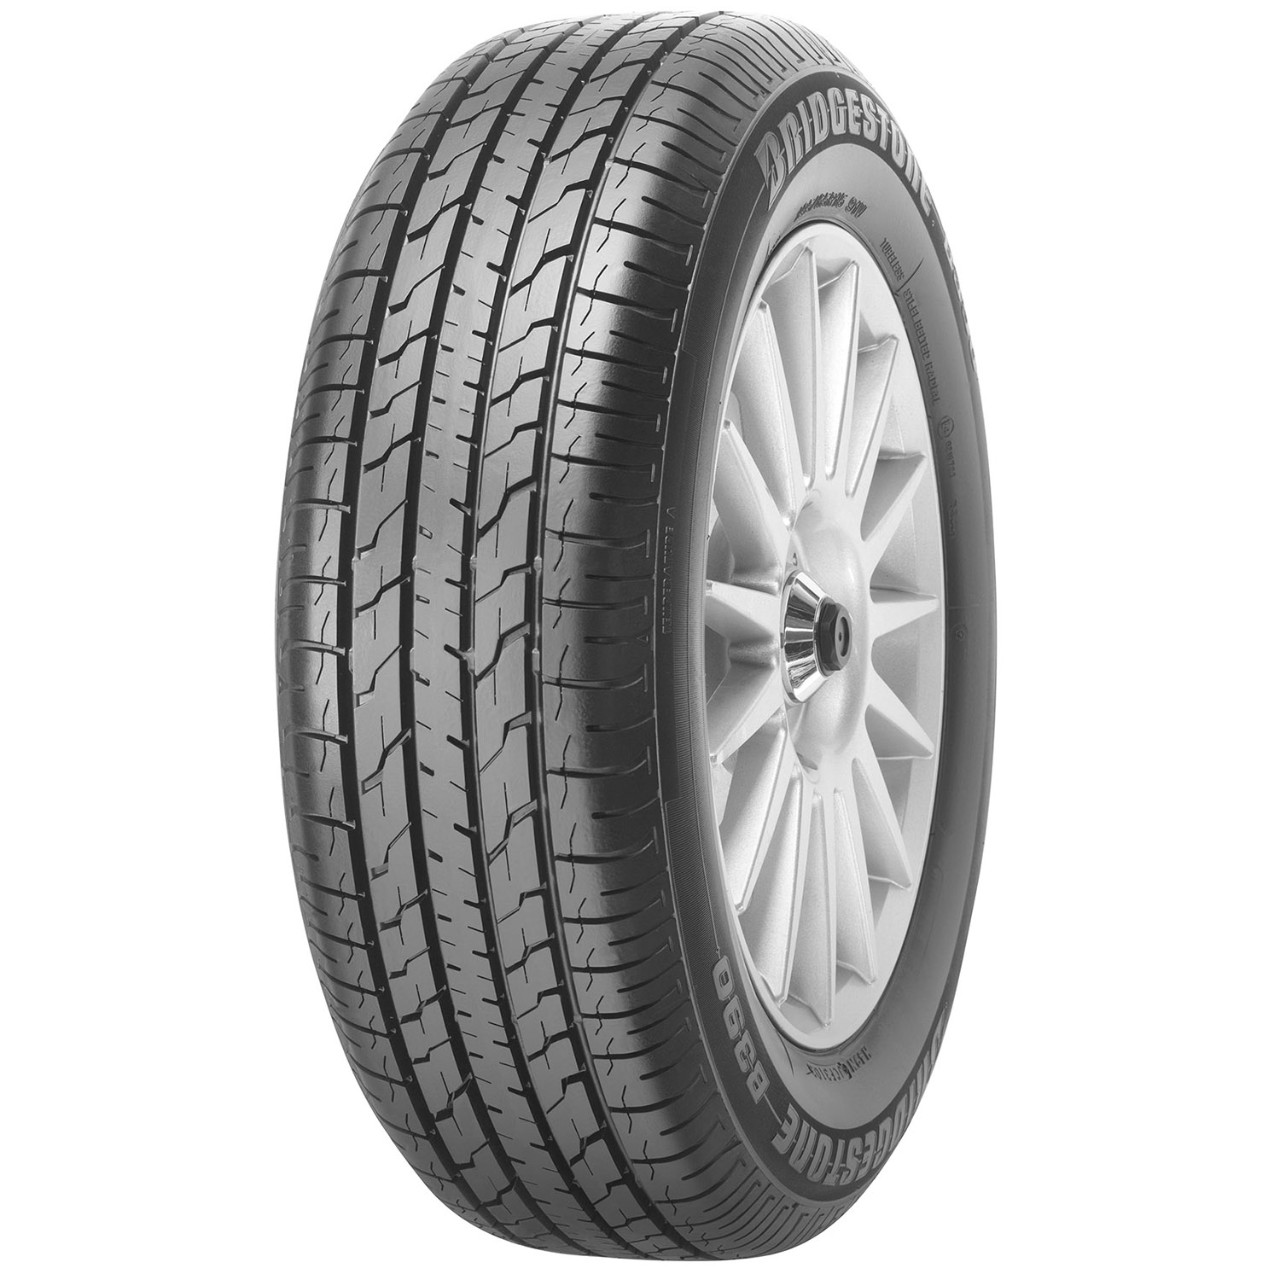 Bridgestone B-Series B390